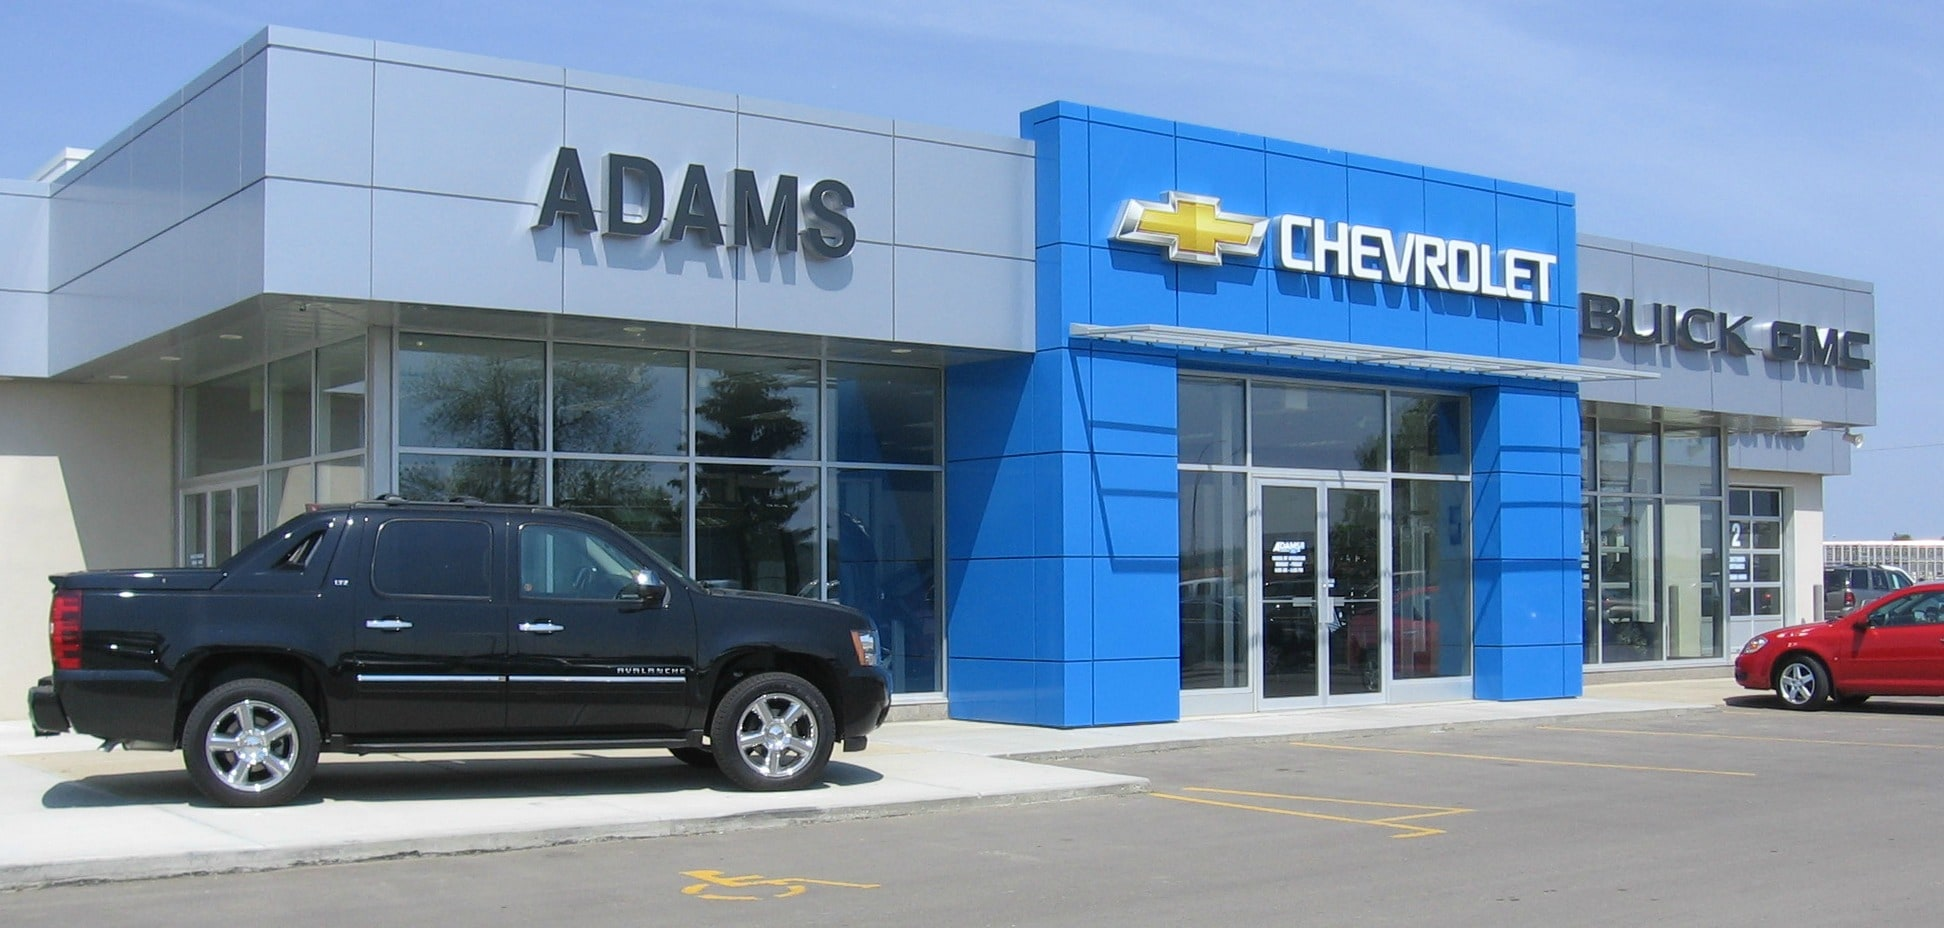 Chevrolet Buick GMC Dealer in Ponoka   Adams Chevrolet Buick GMC Come